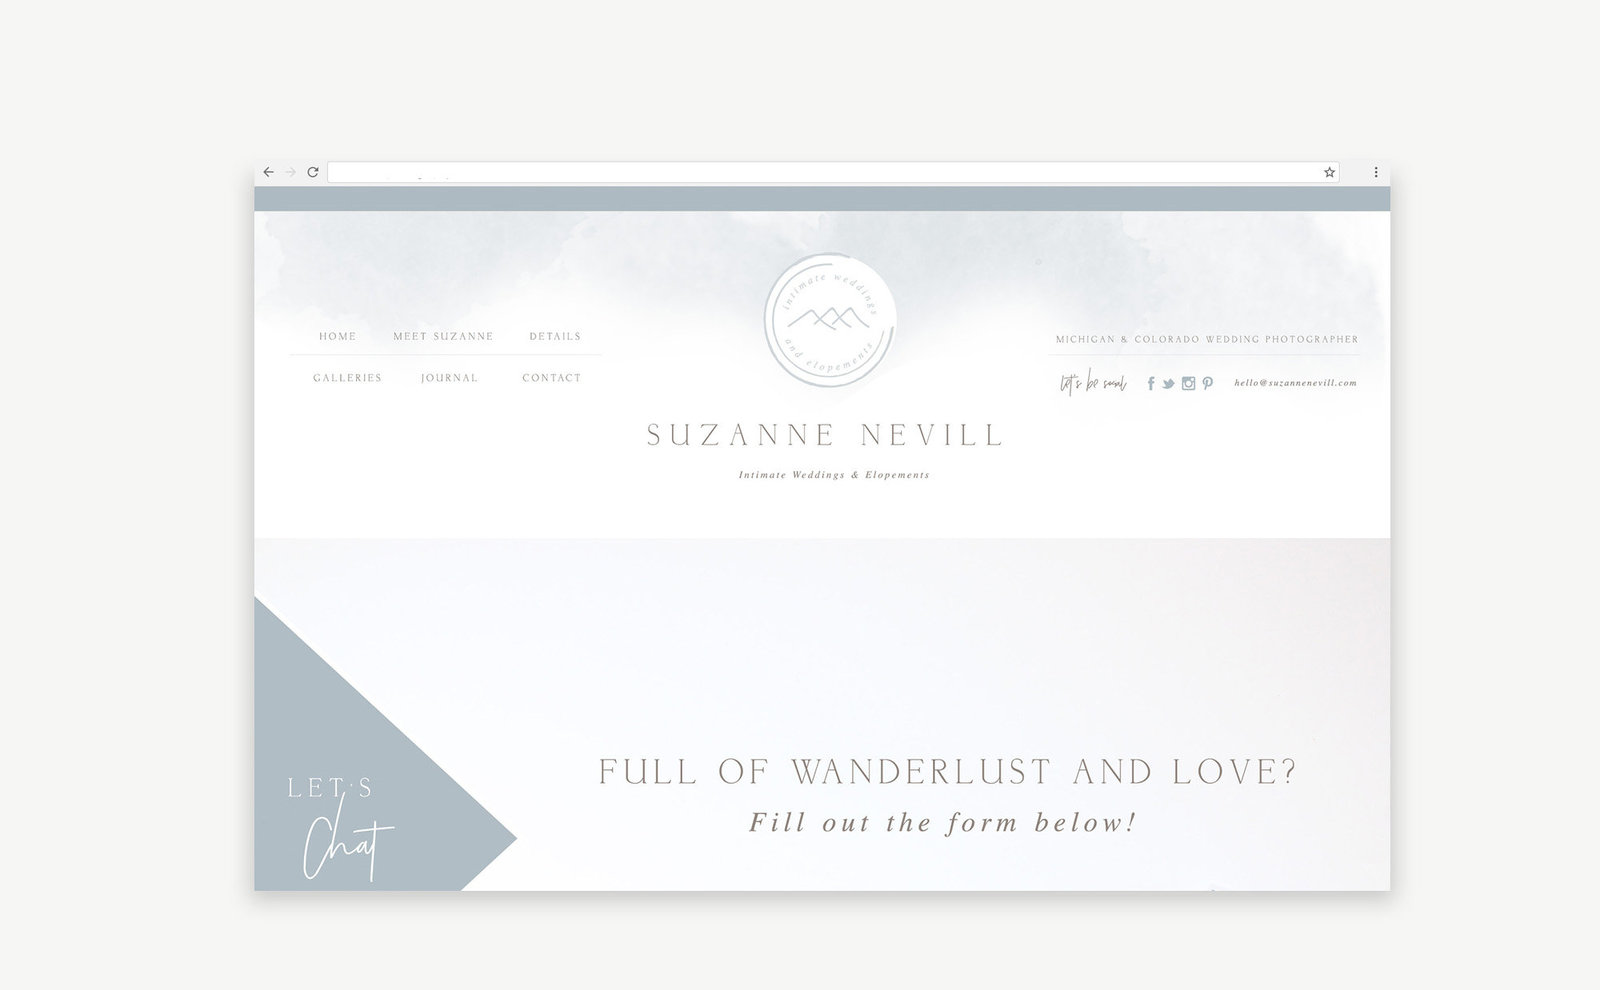 website-design-photographer-web-design-custom-showit5-colorado-wedding-photographer-suzanne-nevill-06